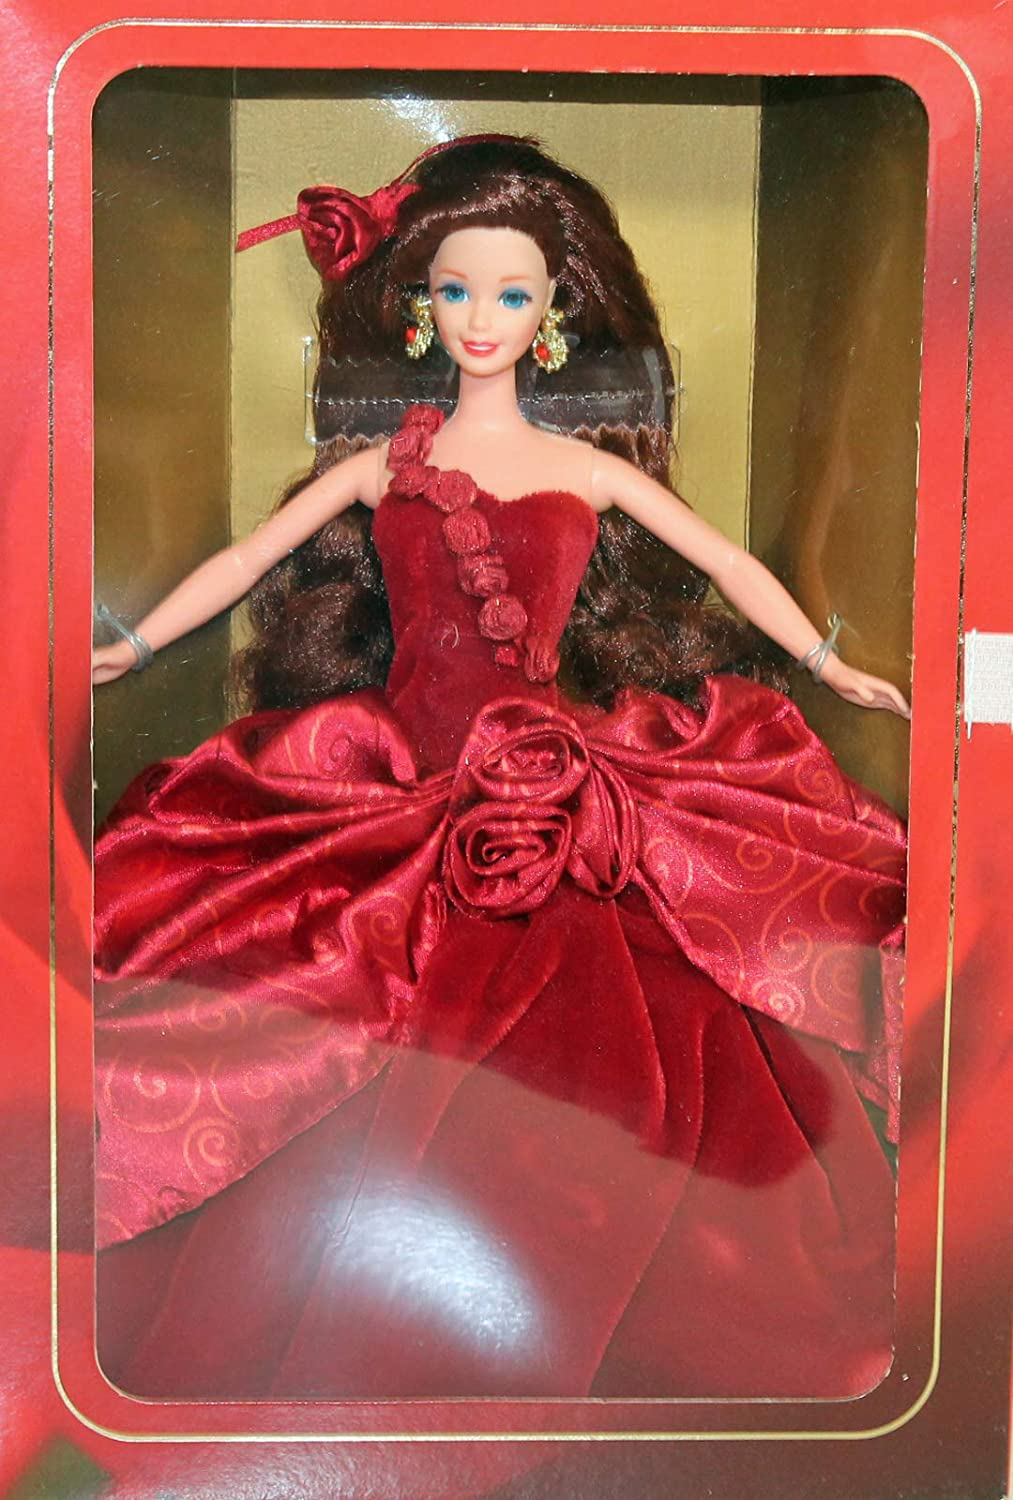 Radiant Complete Free Shipping Rose Barbie Doll - Mattel 2nd Gorgeous Style Limited Society